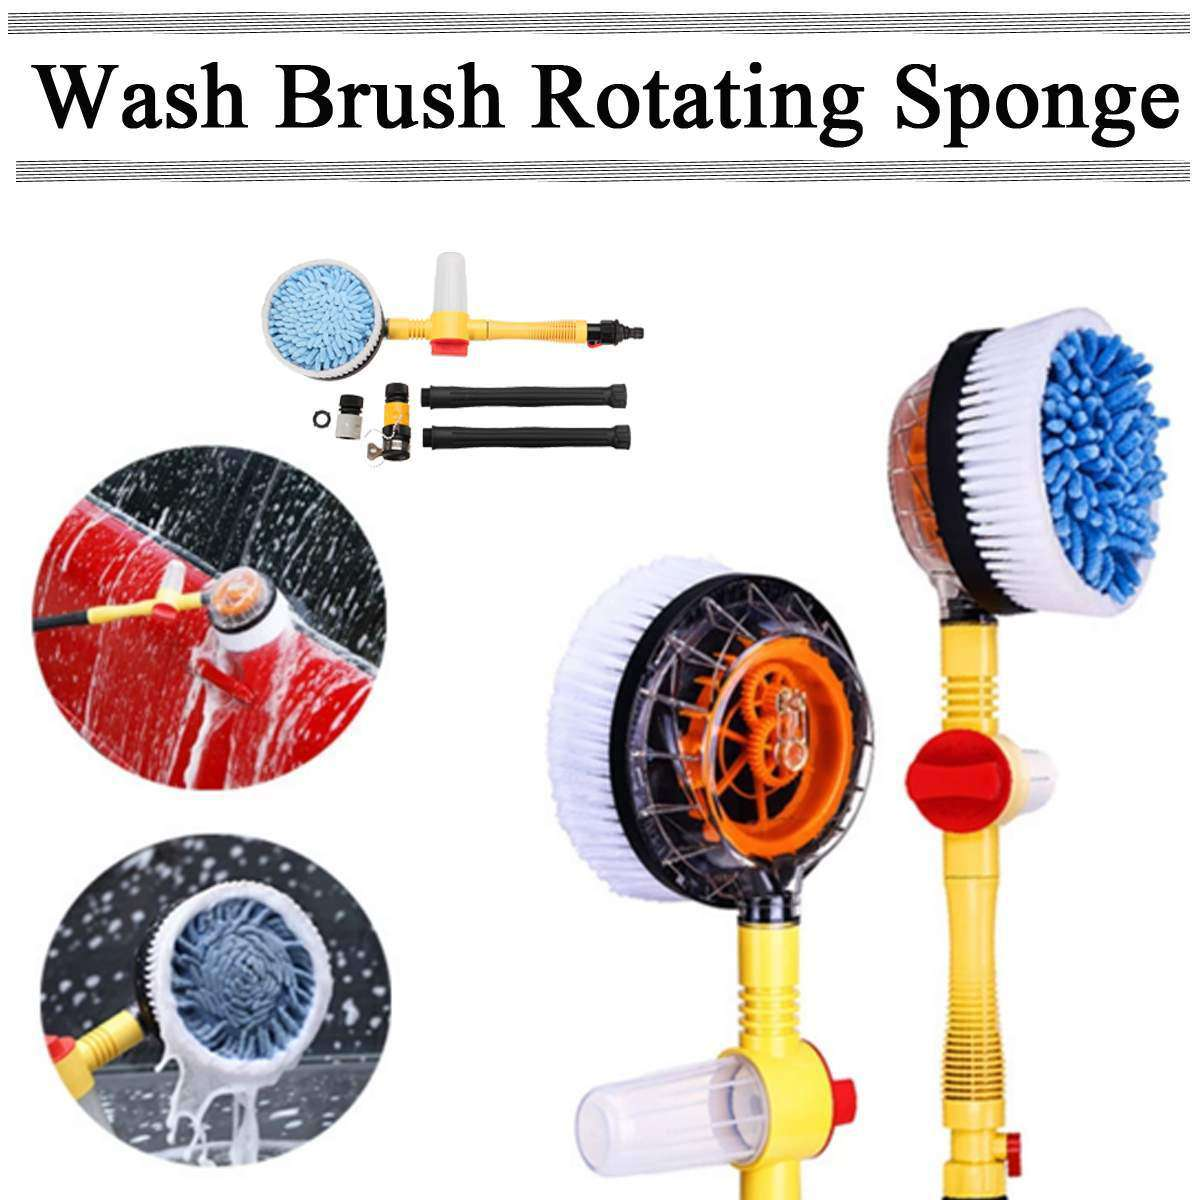 Automatic Car Wash Brush - Discounts You May Like